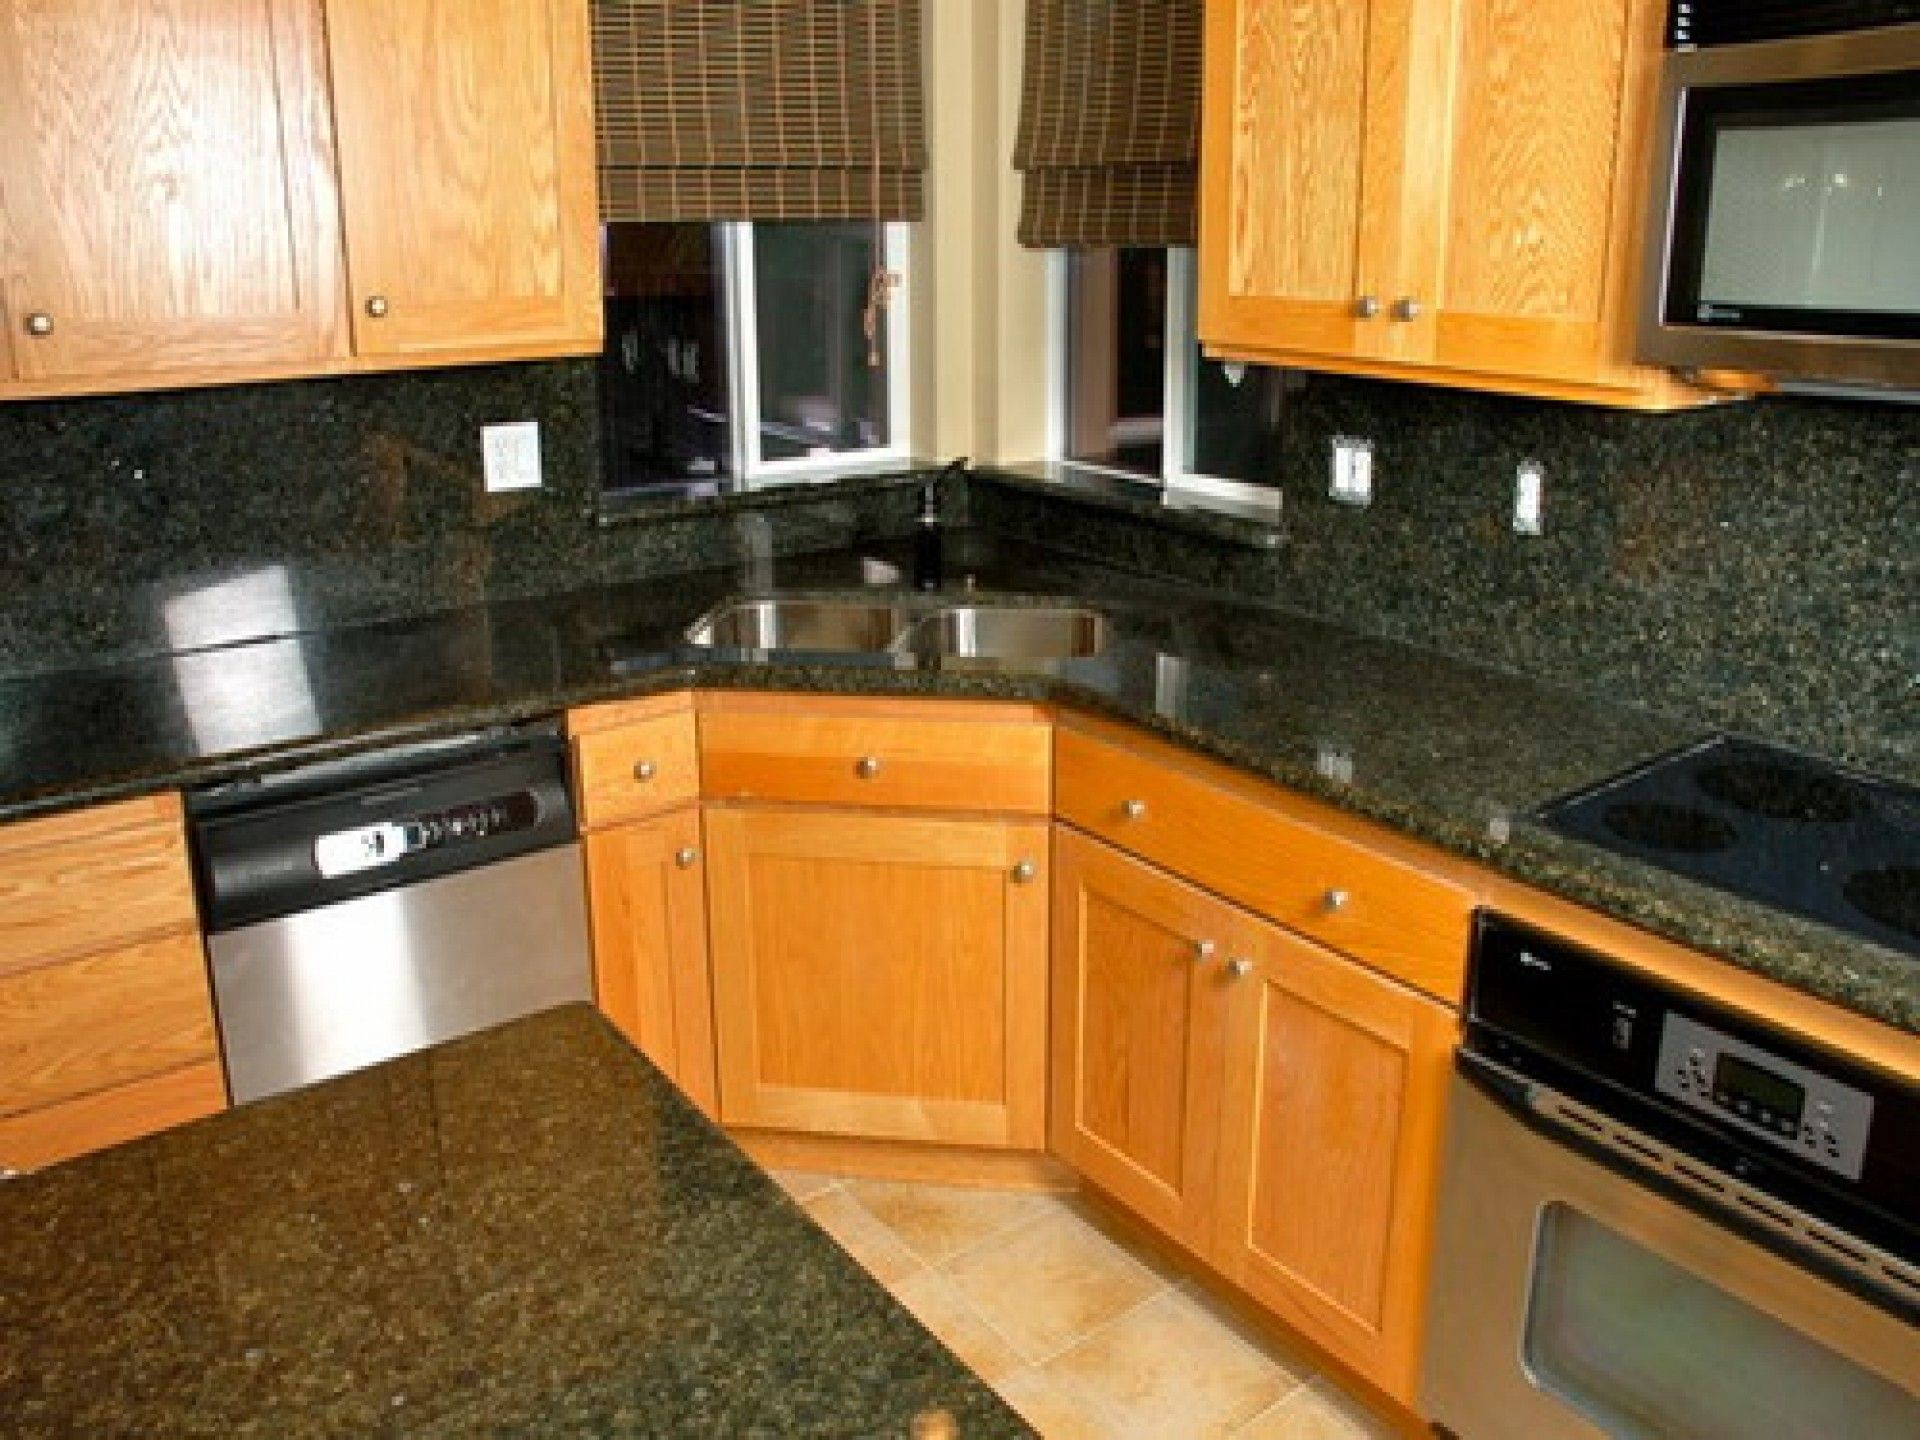 Oak Cabinets With Granite Countertops Pictures Ivory Oak Kitchen Cabinet With Black Granite Counter Tops